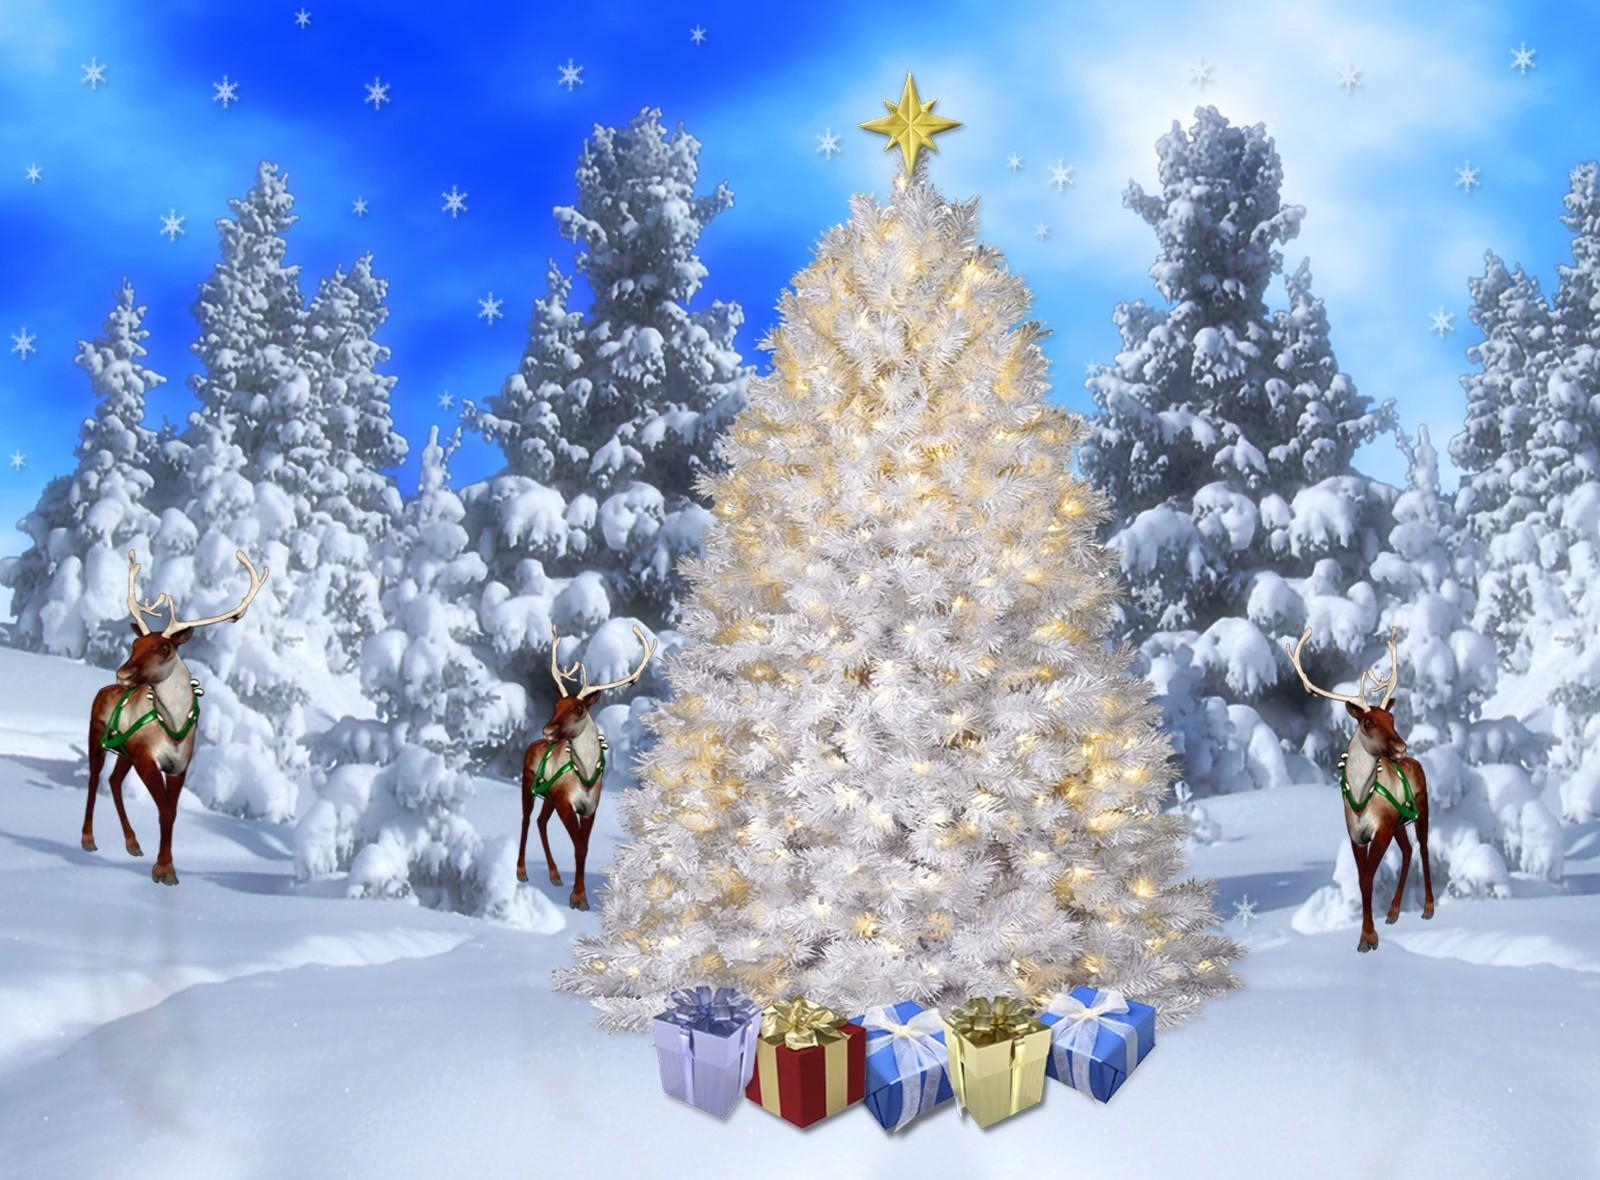 108096 download wallpaper Holidays, Forest, Snowflakes, Snow, Deers, Presents, Gifts, Holiday, Fir-Trees screensavers and pictures for free